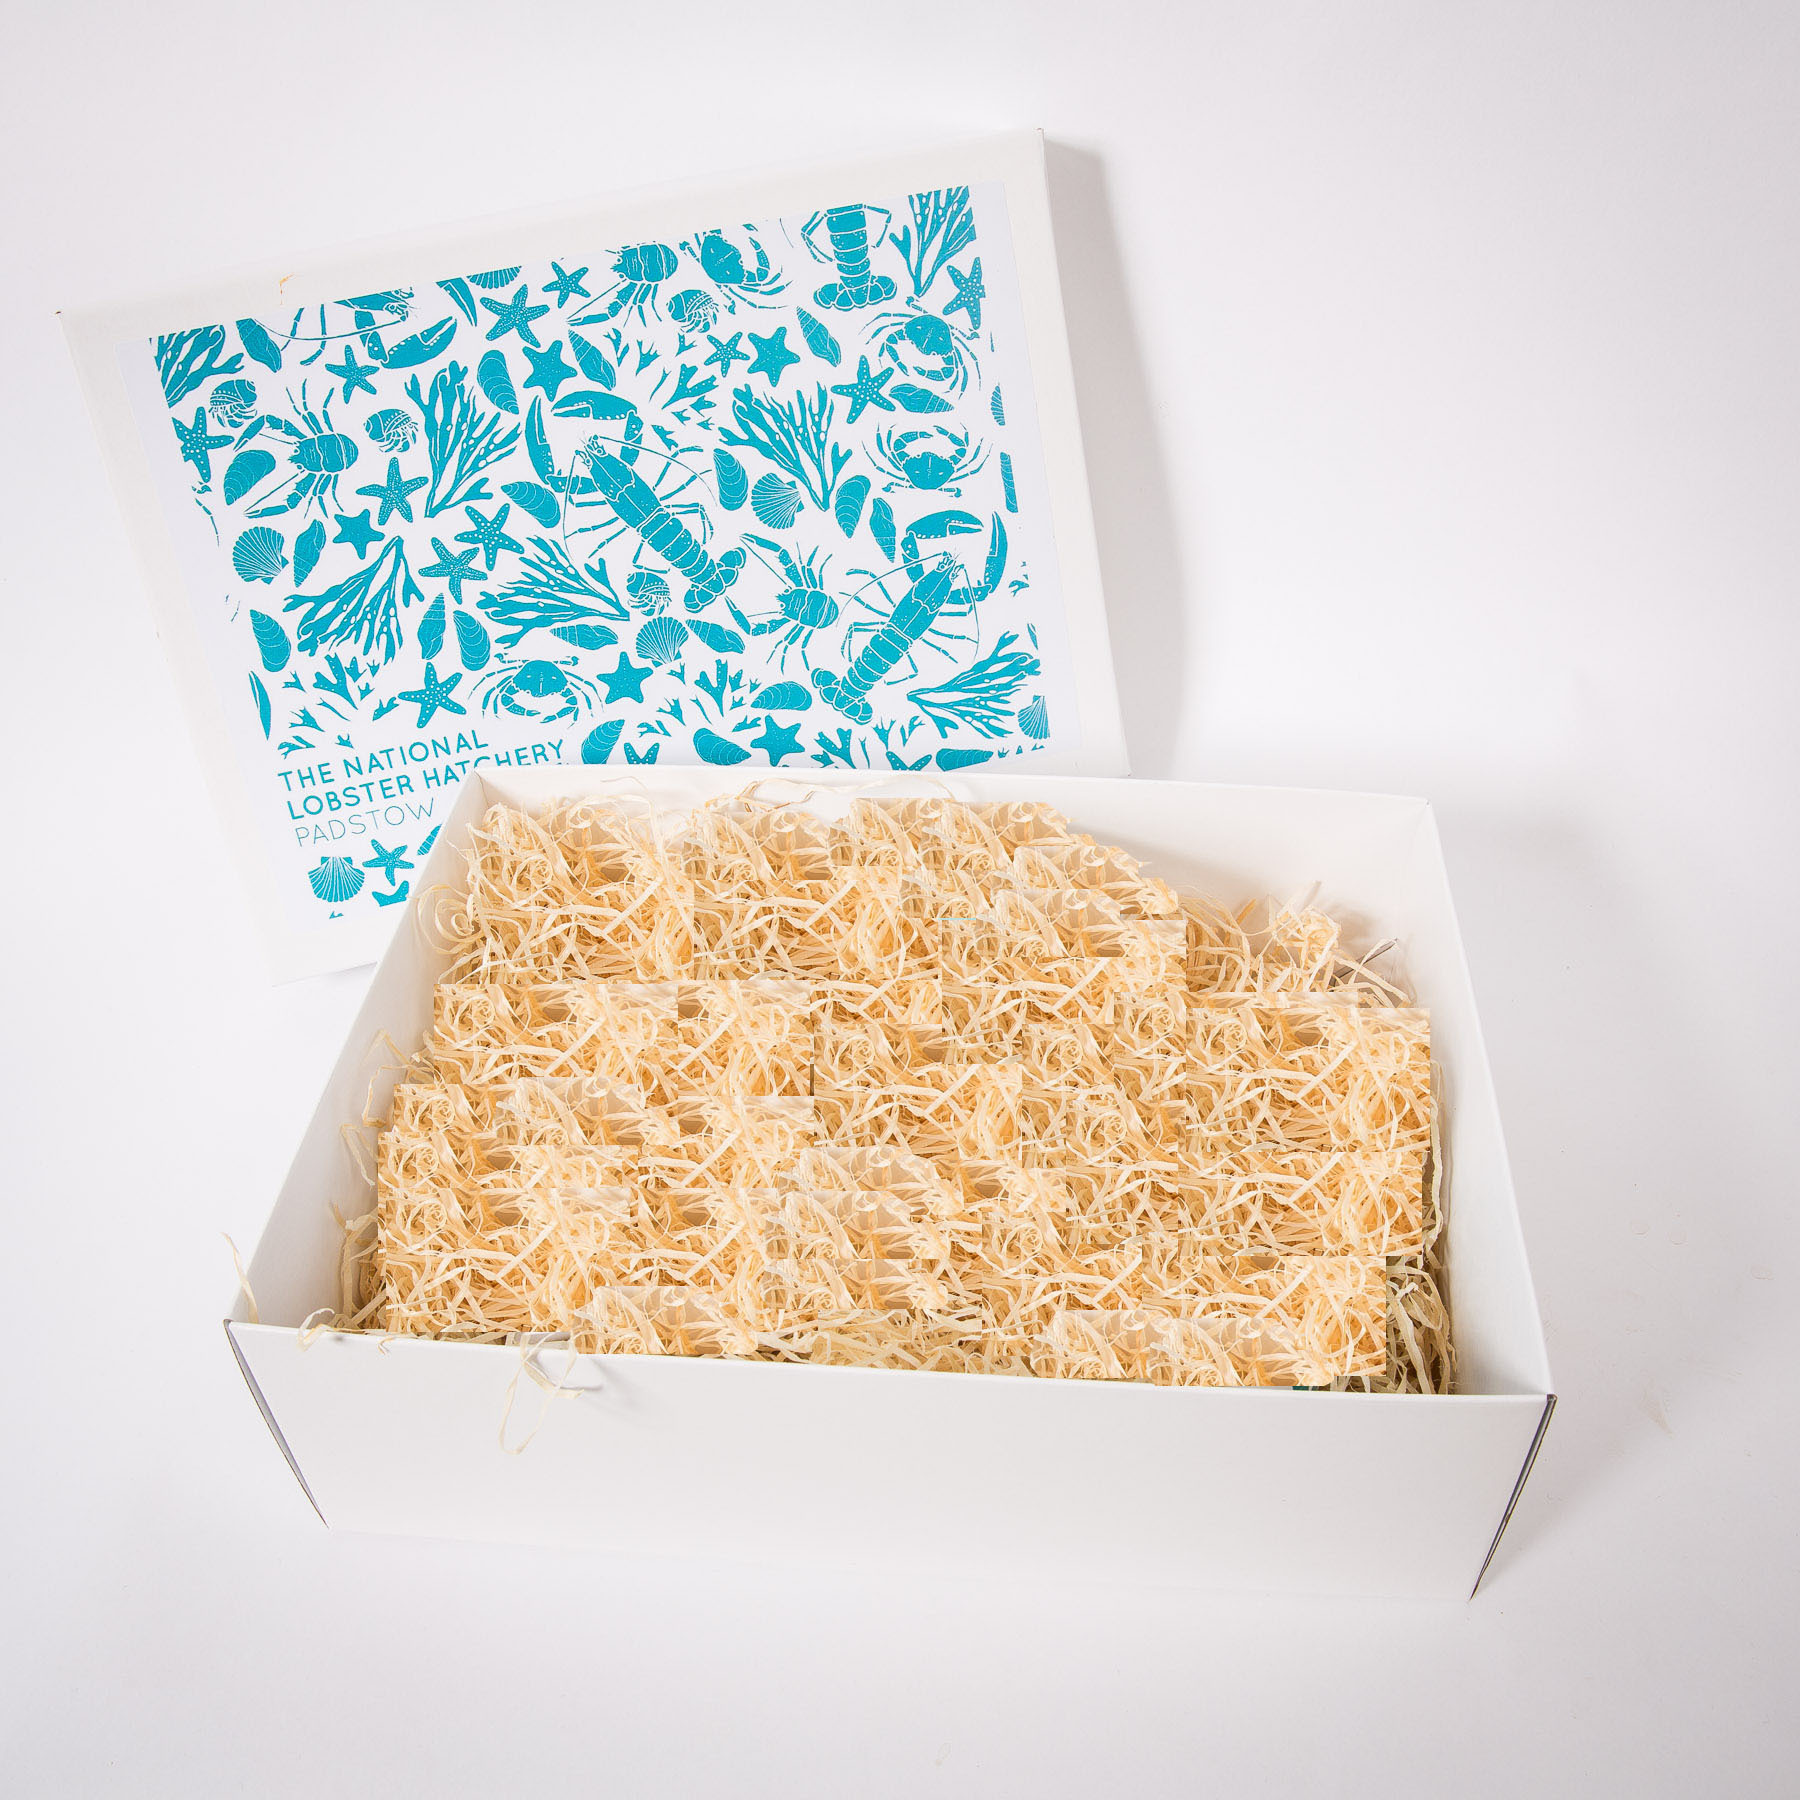 Make your own Hamper / Gift Box 00219